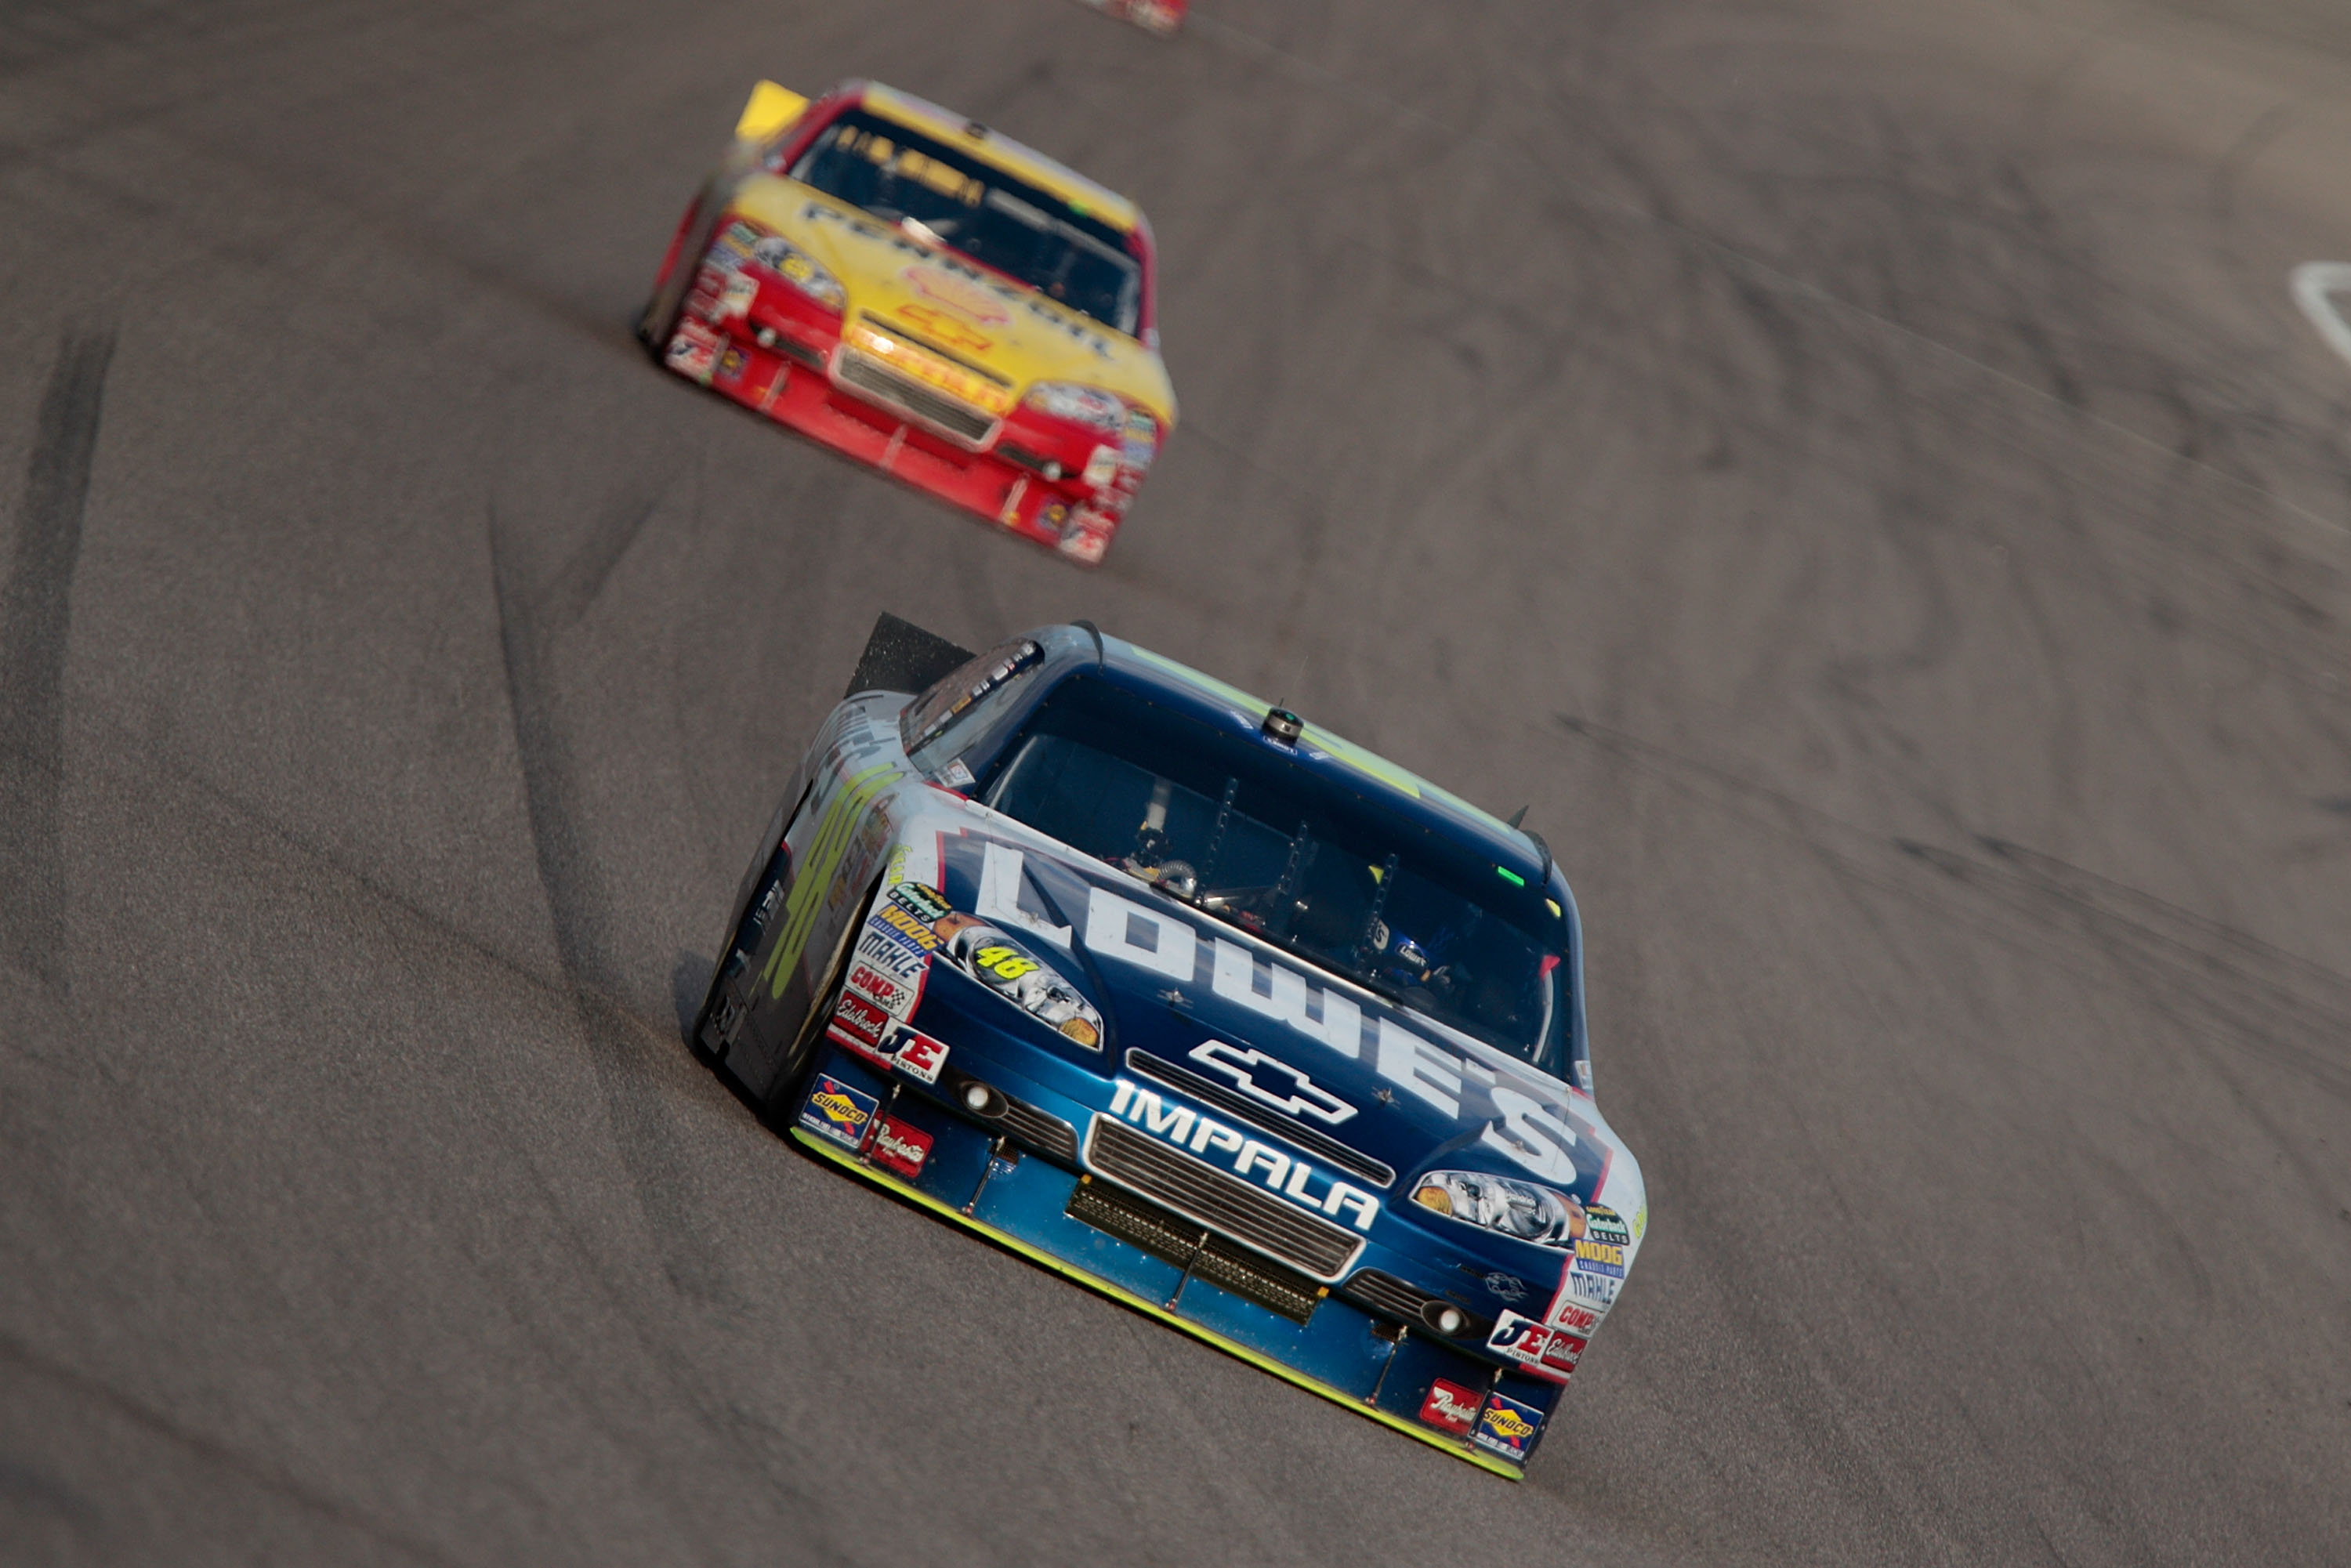 HOMESTEAD, FL - NOVEMBER 21:  Jimmie Johnson, driver of the #48 Lowe's Chevrolet, leads Kevin Harvick, driver of the #29 Shell/Pennzoil Chevrolet, during the NASCAR Sprint Cup Series Ford 400 at Homestead-Miami Speedway on November 21, 2010 in Homestead,